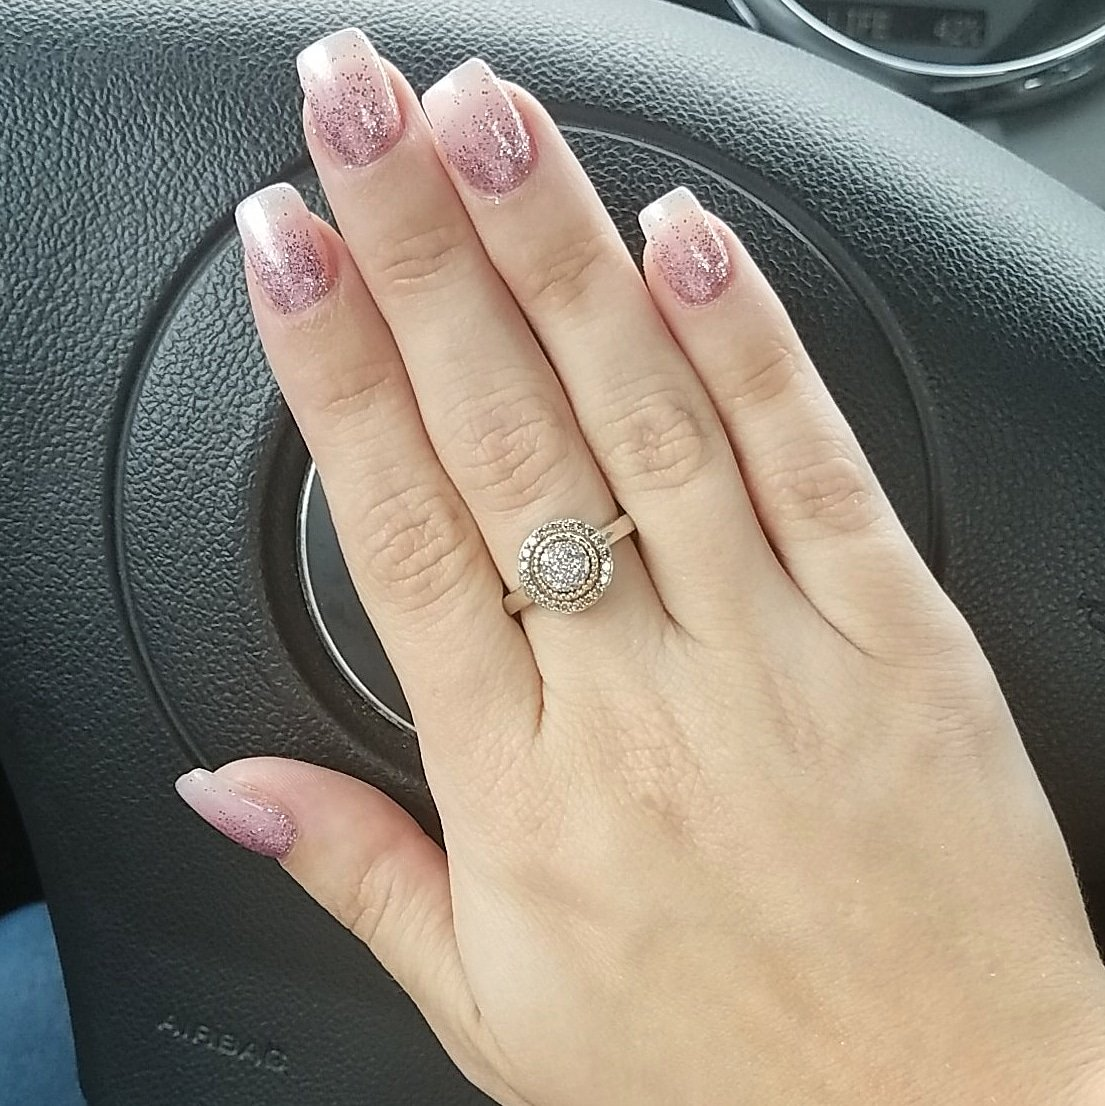 Nails inspired by @Chrishell7 #IvyNails Sometimes you have to remember to #Sparkle Loves. pic.twitter.com/dImk8OOkWl